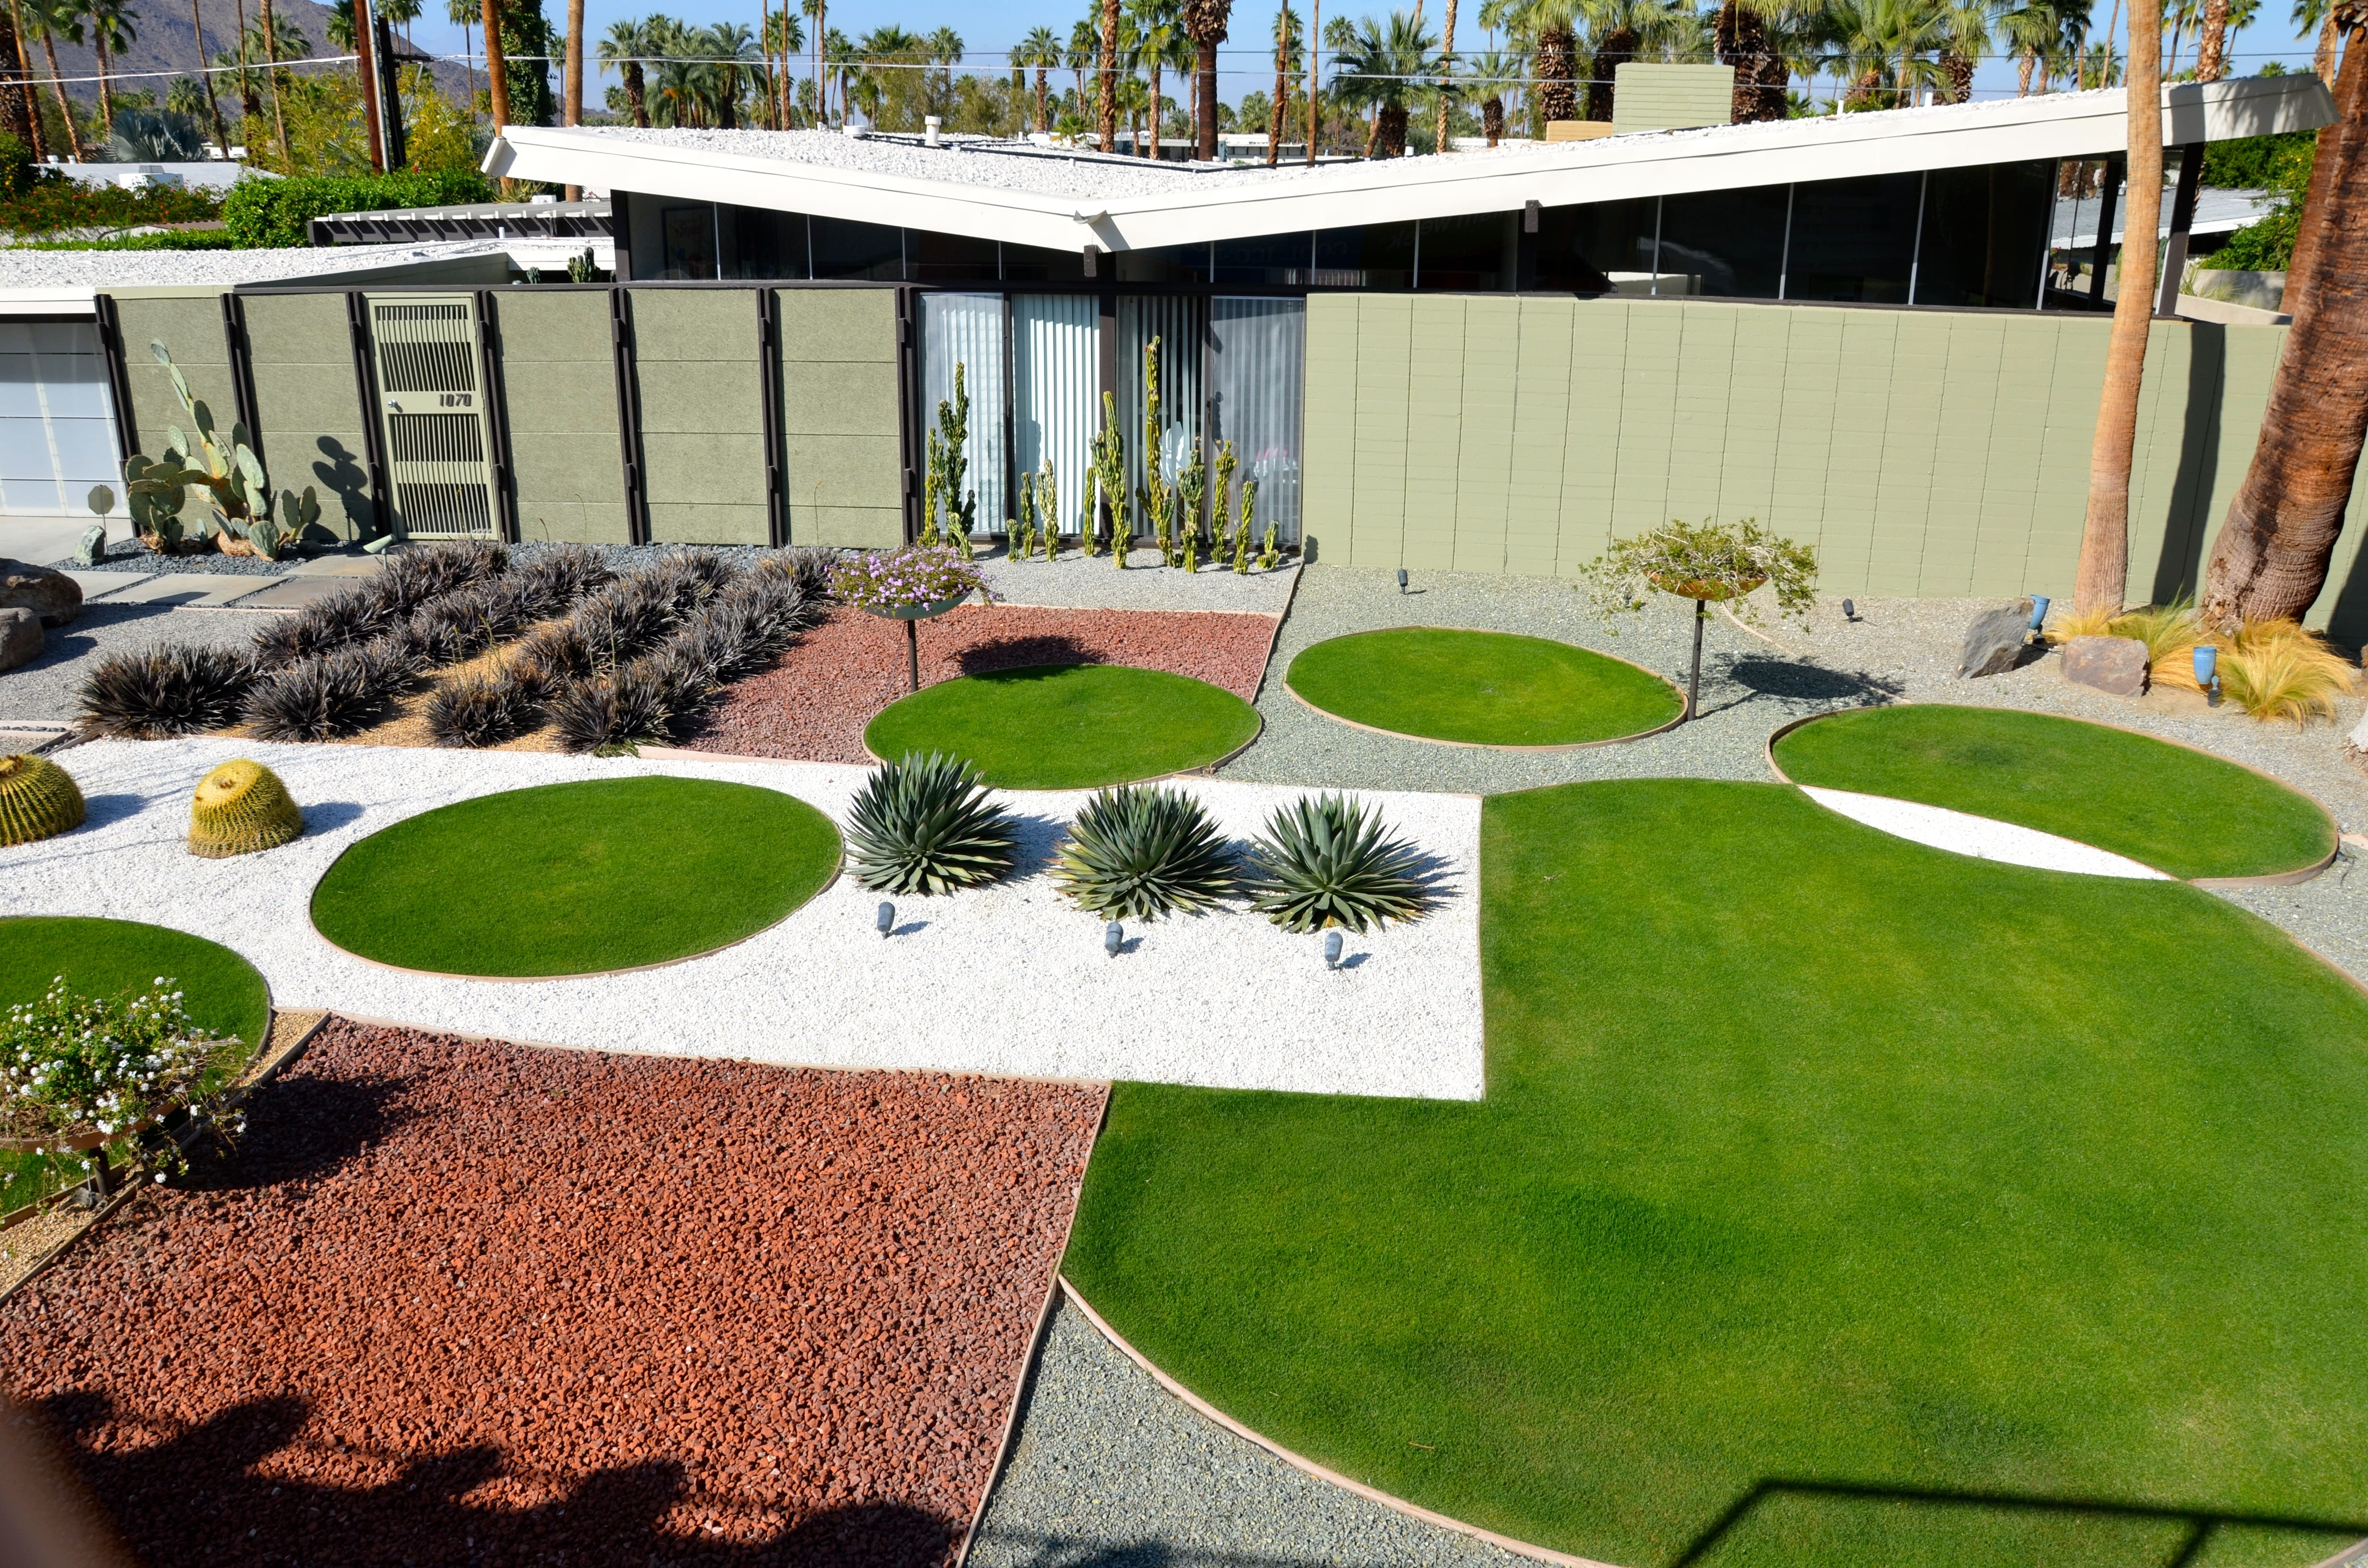 Mid Century Modern Homes Landscaping - Landscaping we also drove through early mid century modern